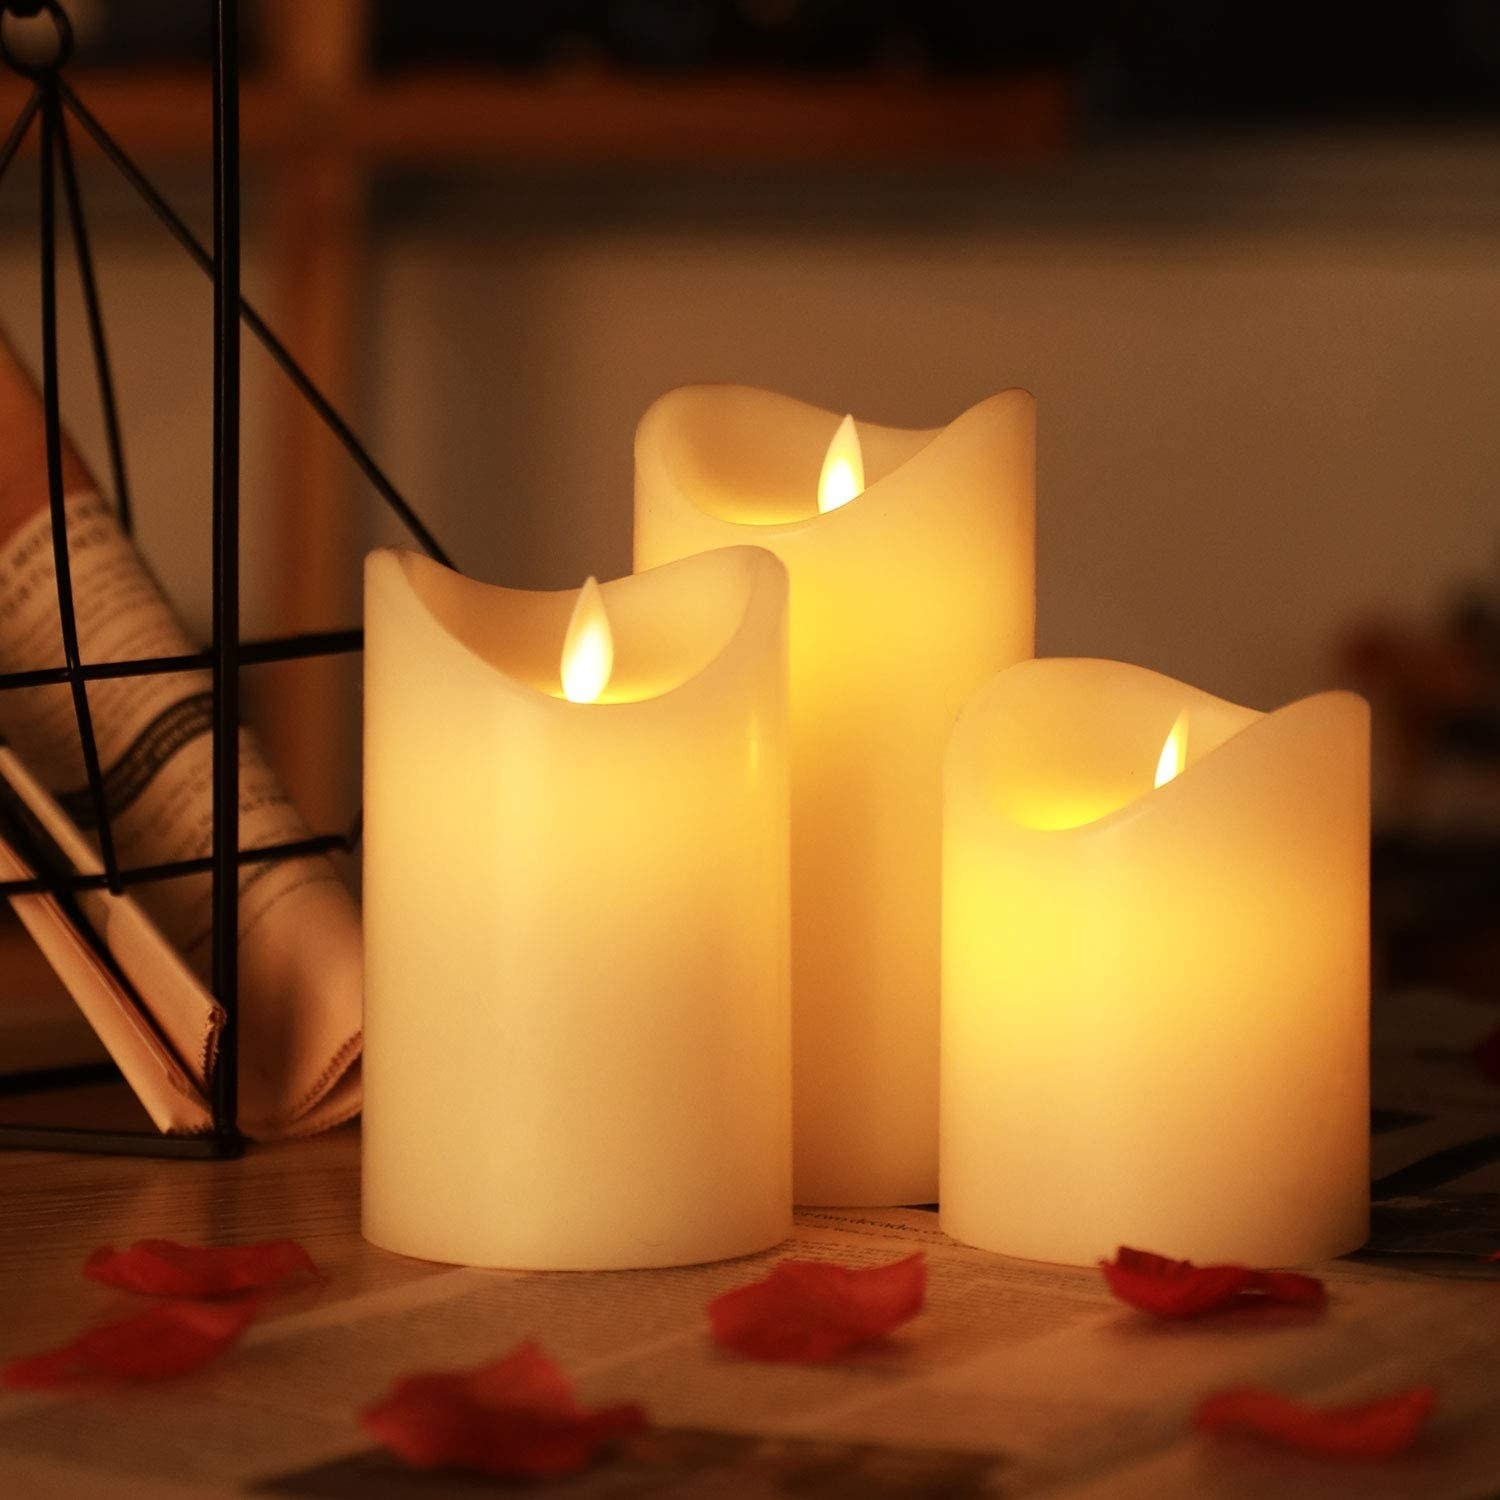 Three flameless candles surrounded by rose petals